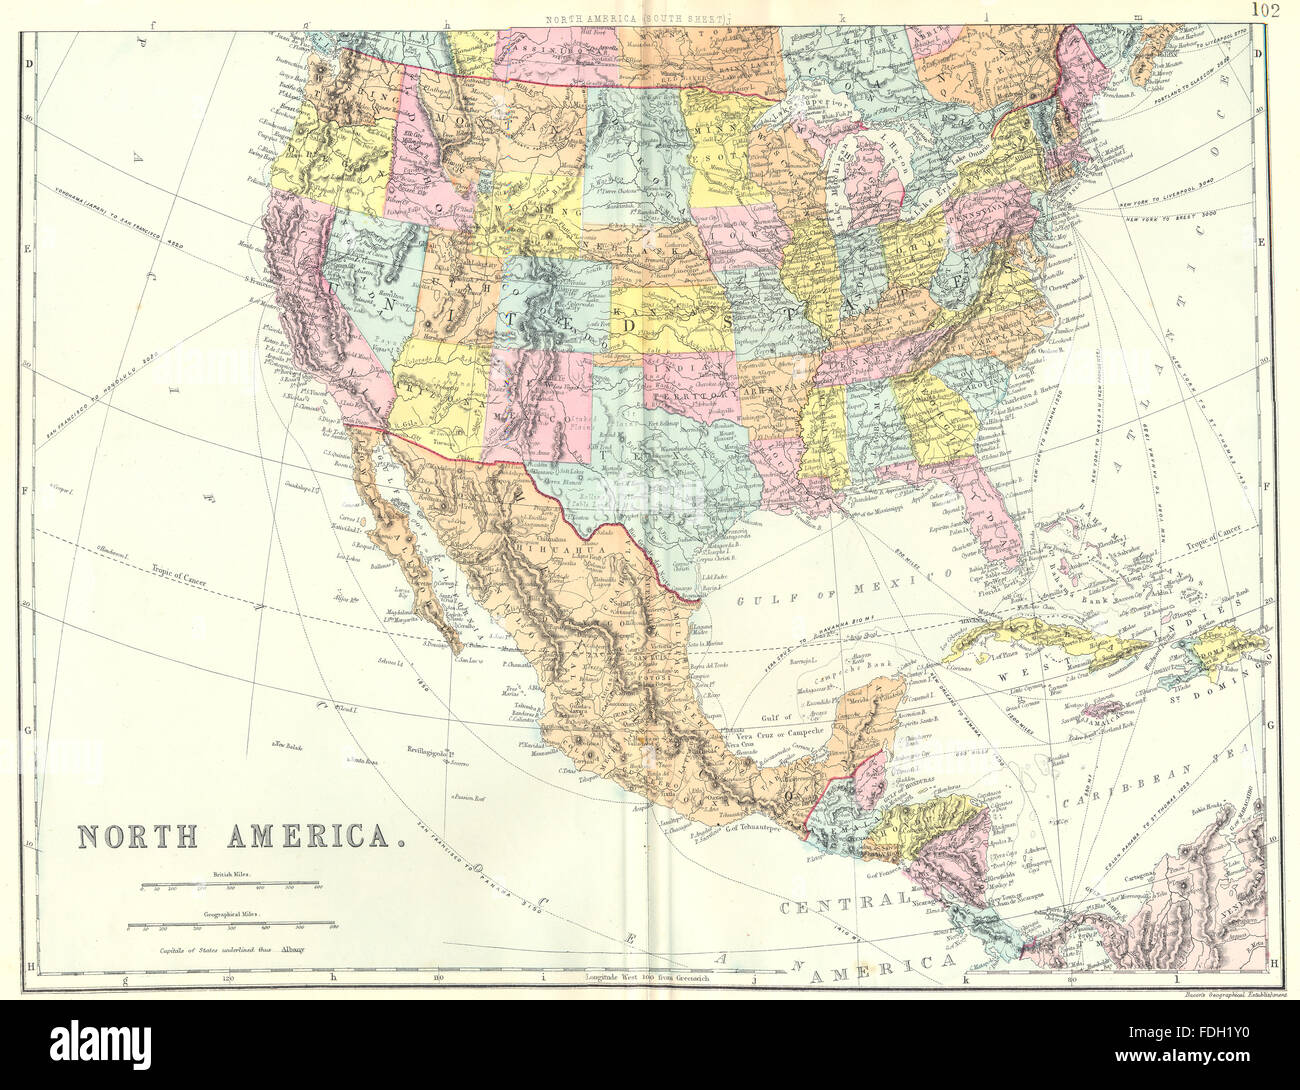 North South America Map Mexico Stockfotos & North South ...